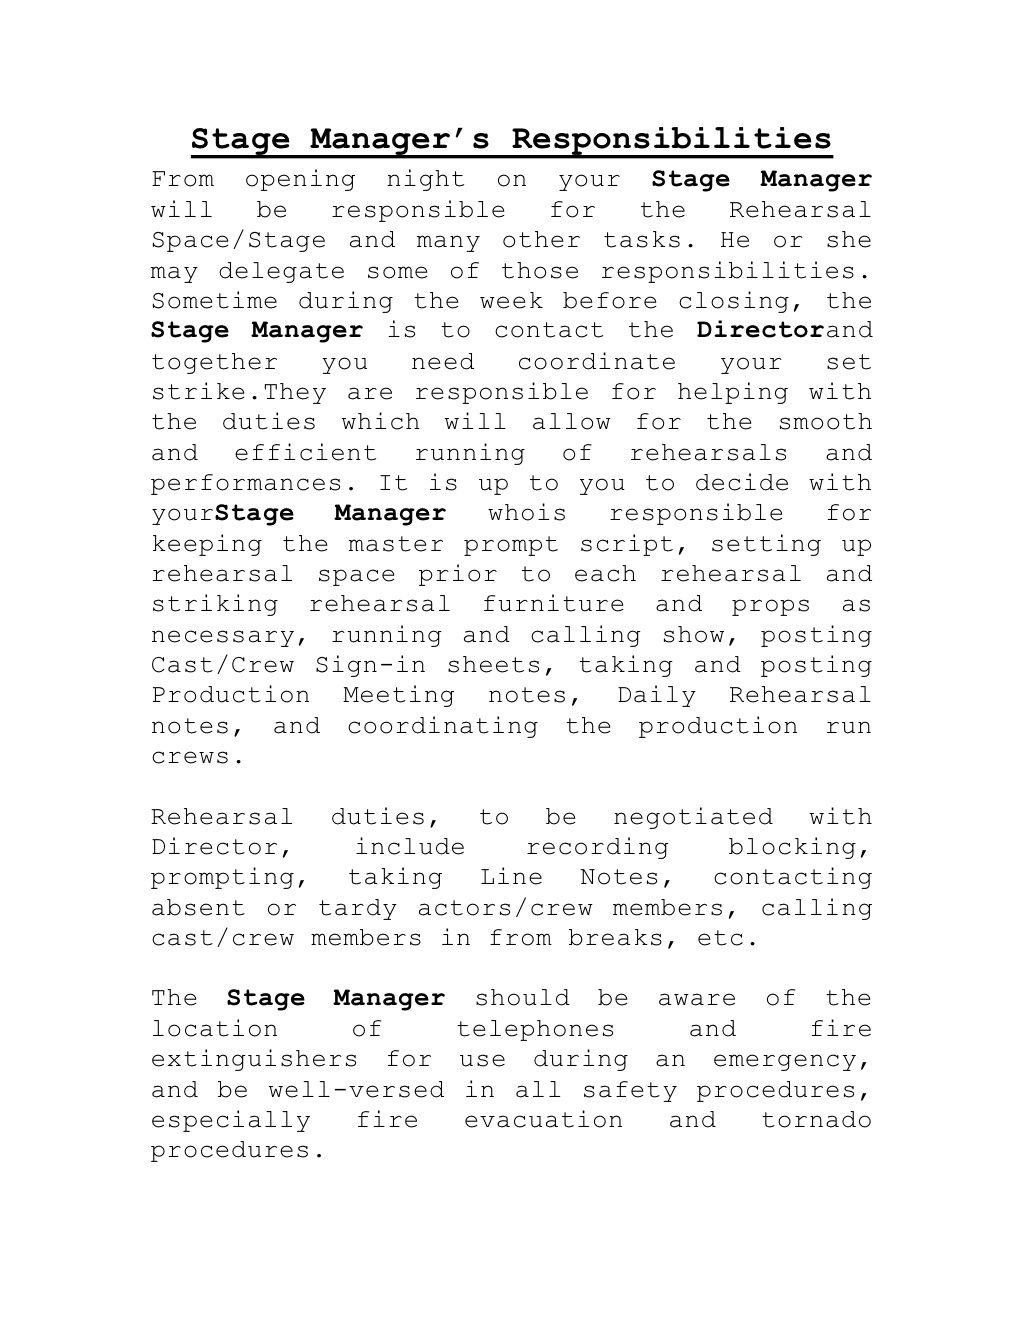 StageManagersResponsibilities By Bryonsparks Via